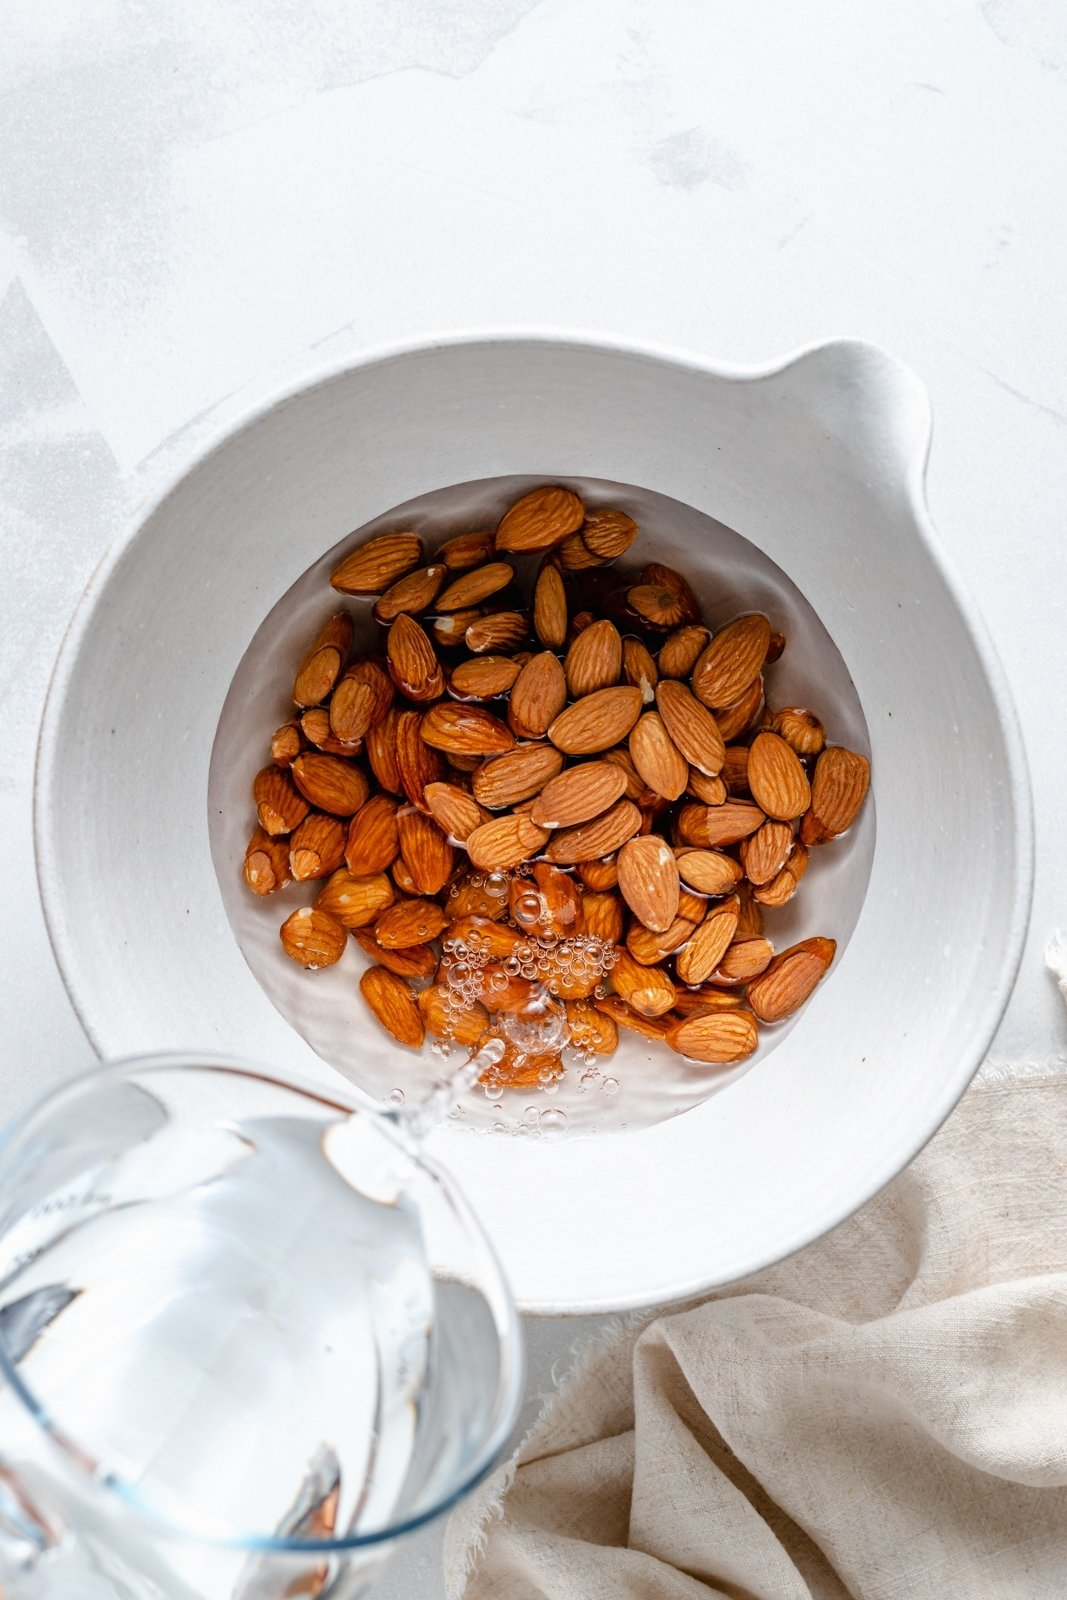 pouring water into a bowl of almonds